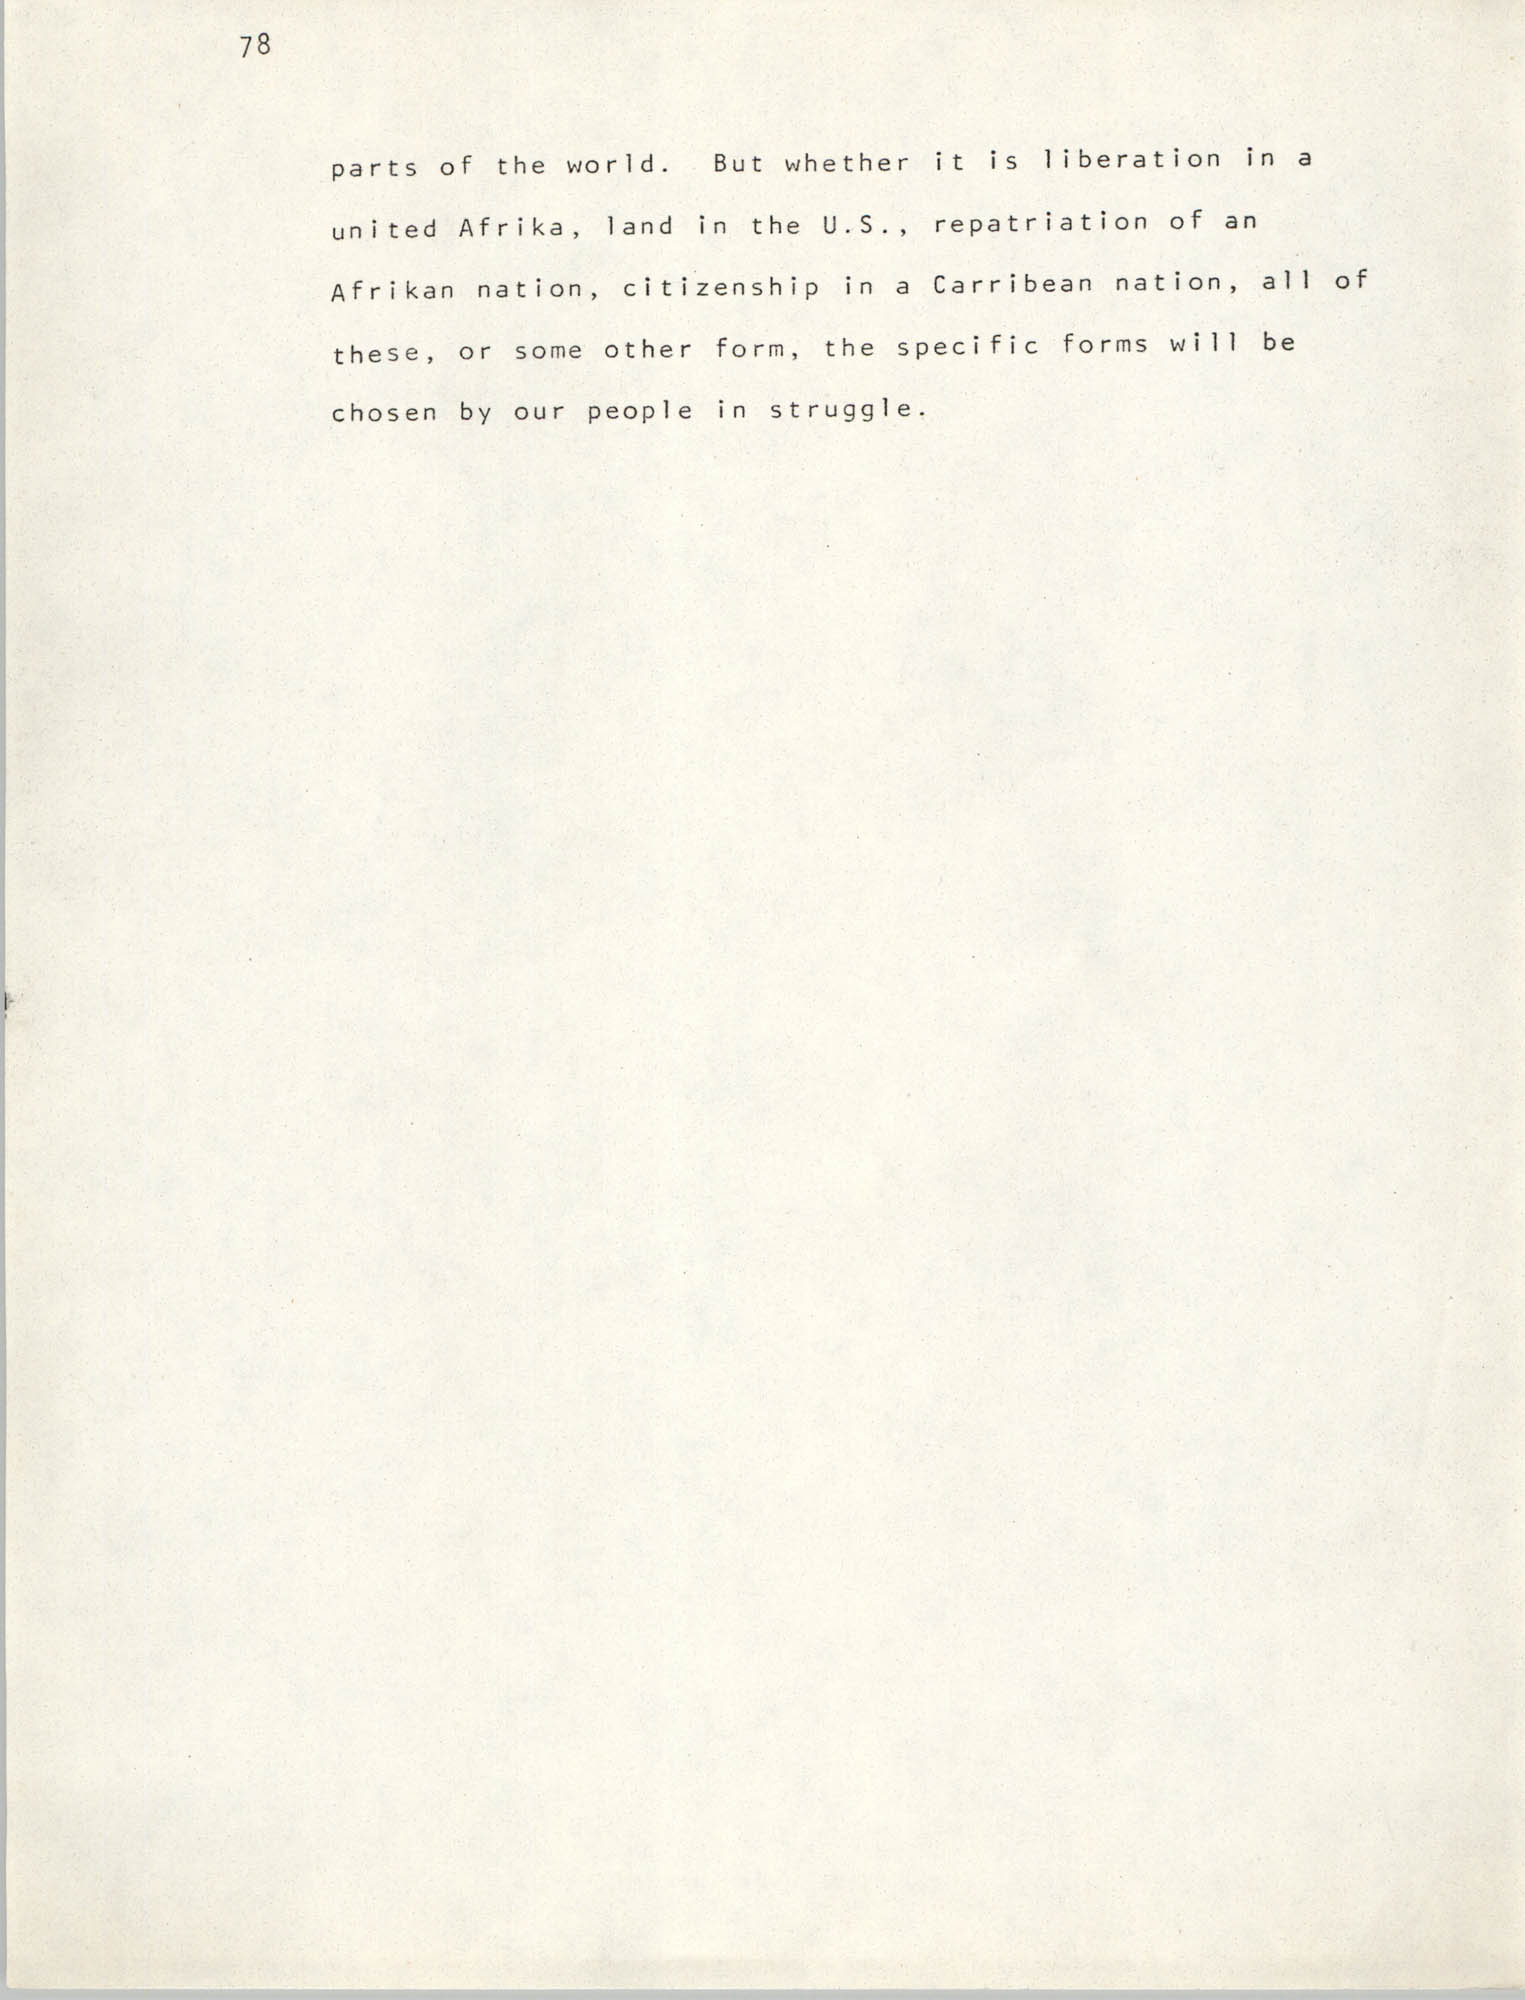 Pan-African Committee of the Black United Front, Page 78